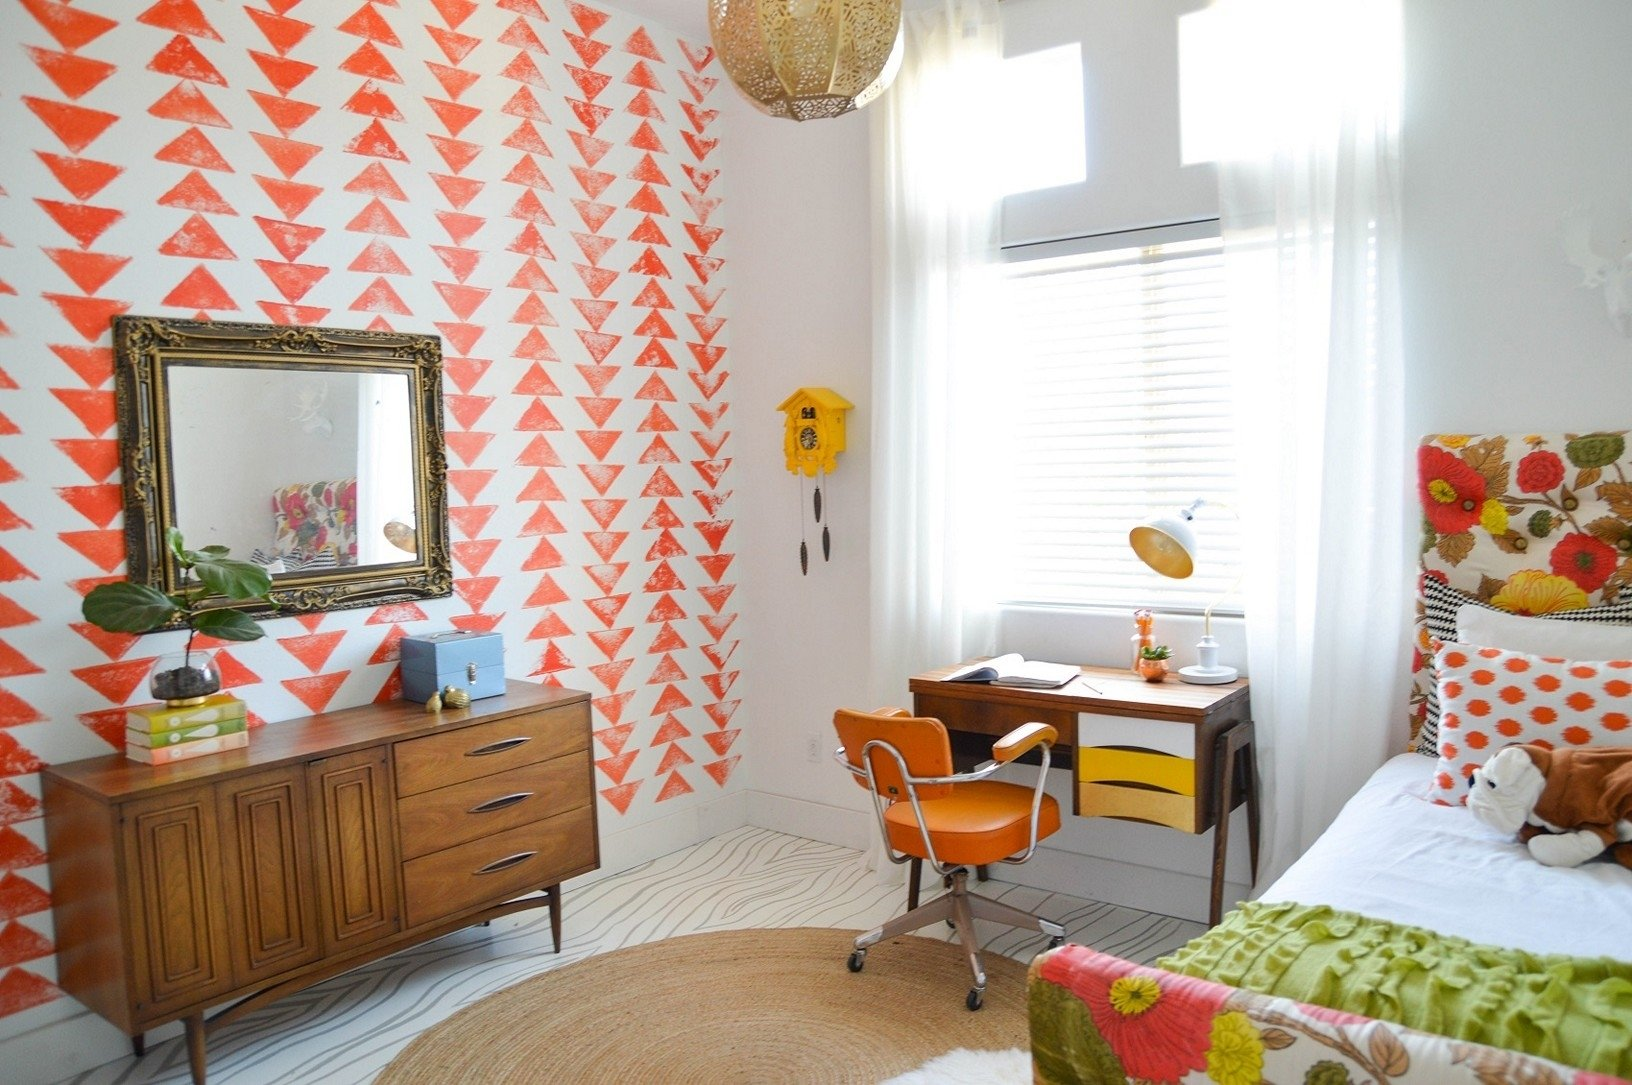 10 Most Popular Diy Decorating Ideas For Apartments diy college apartment decor ideas homestylediary 2020